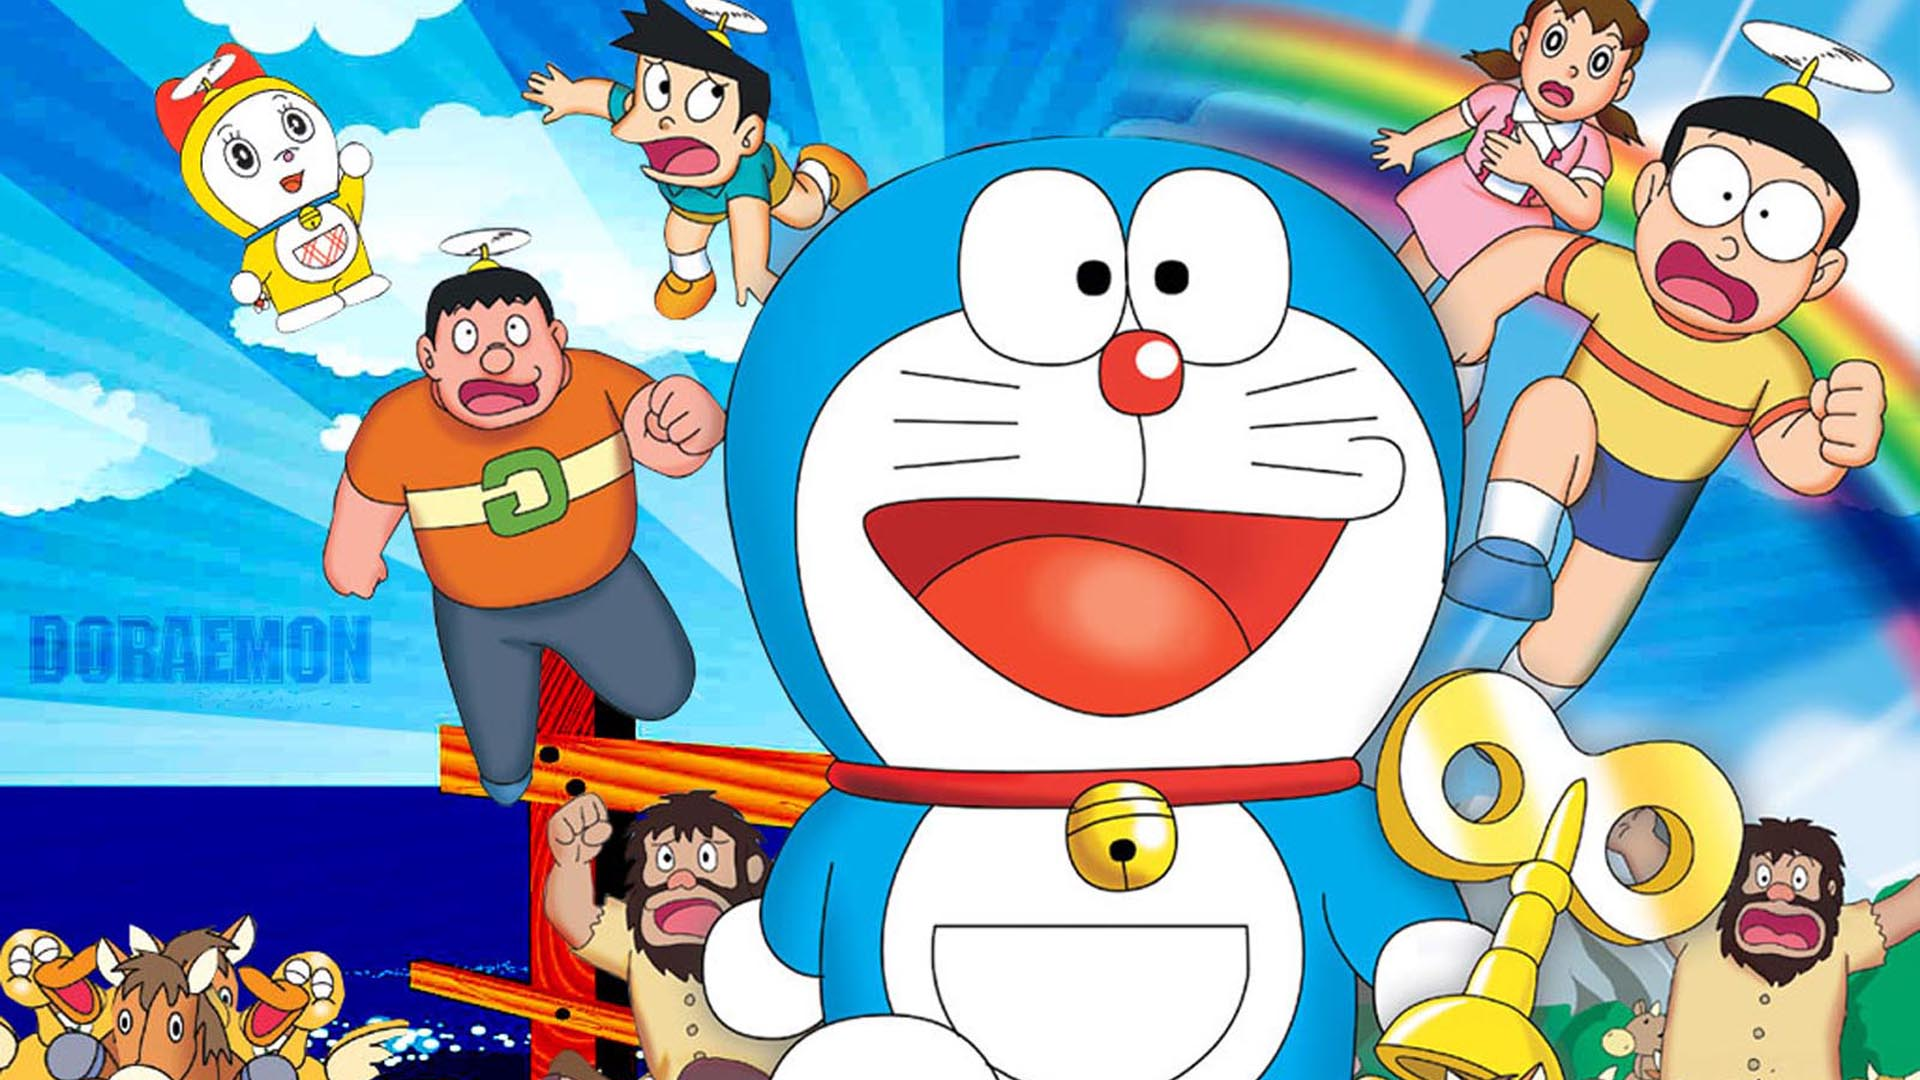 Download free HD Doraemon 3D Cartoon HD for Android Wallpaper, image